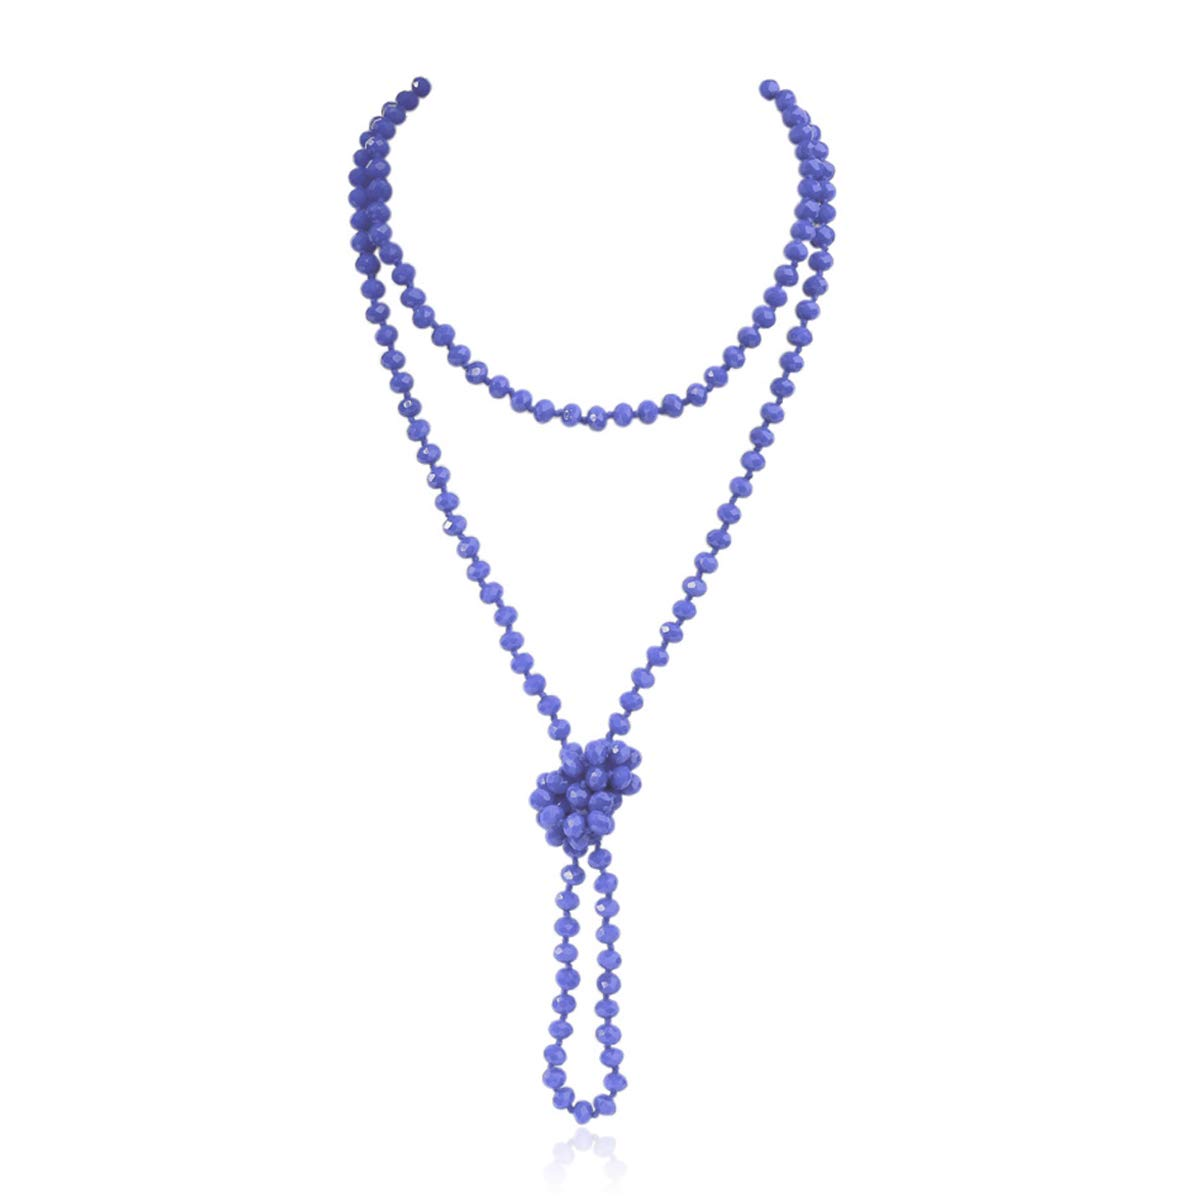 Firstmeet Fashion Glass Beads Rope Knot Long Necklace for Women